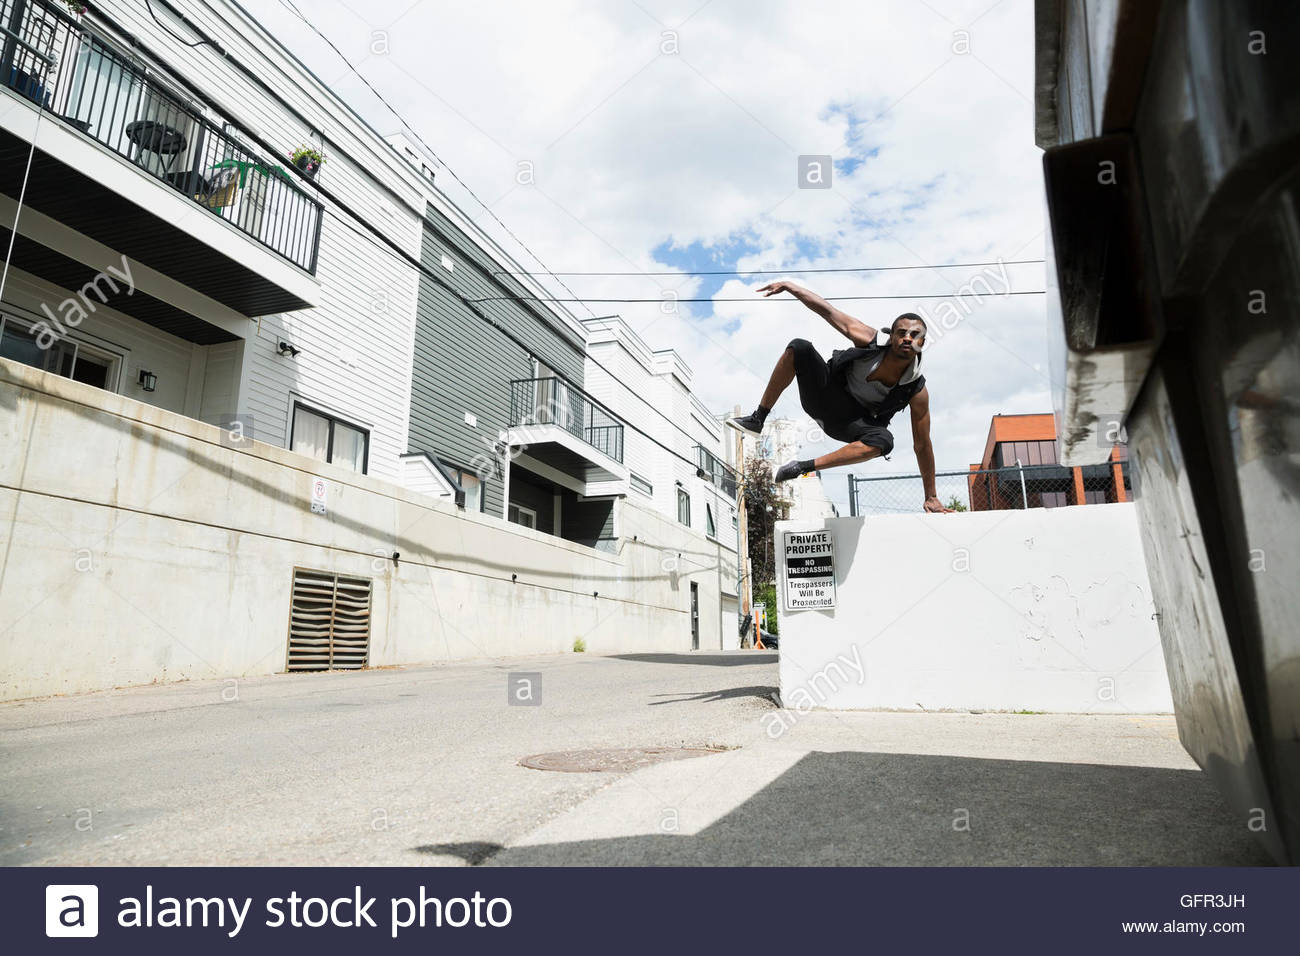 Young man doing parkour free running in sunny urban alley - Stock Image